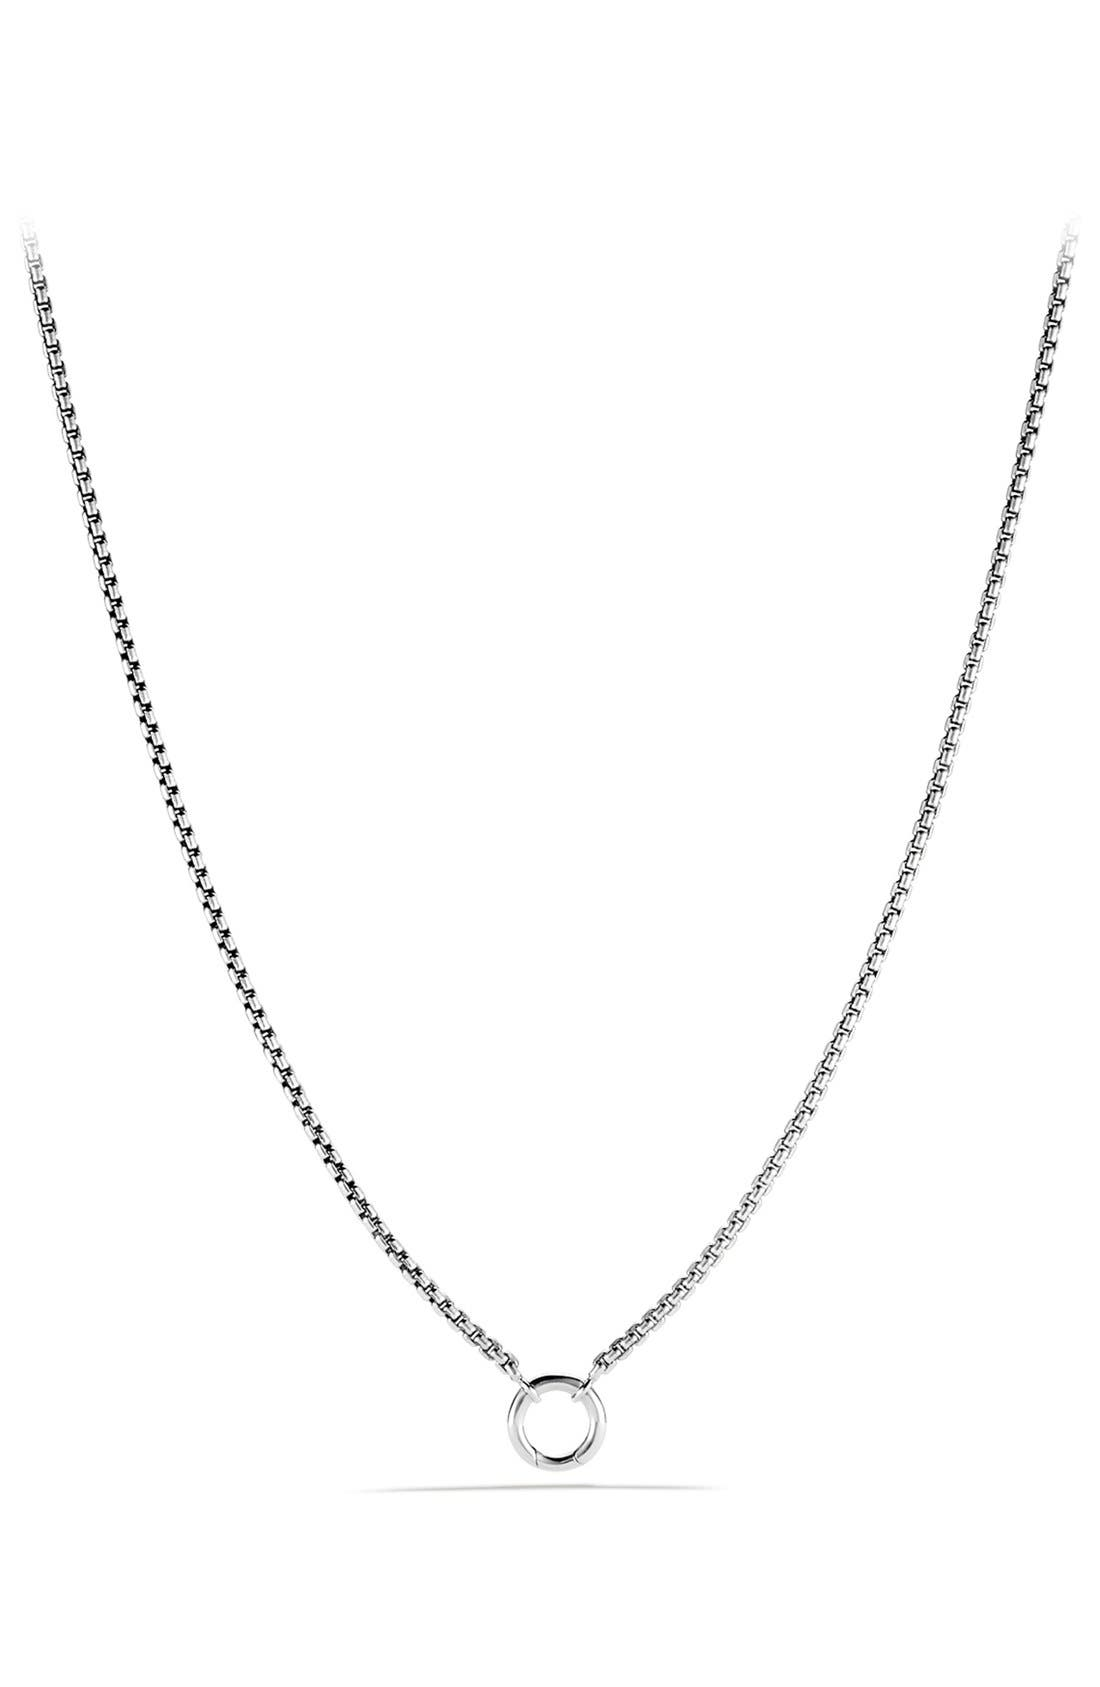 Alternate Image 1 Selected - David Yurman 'Chain' Charm Chain Necklace